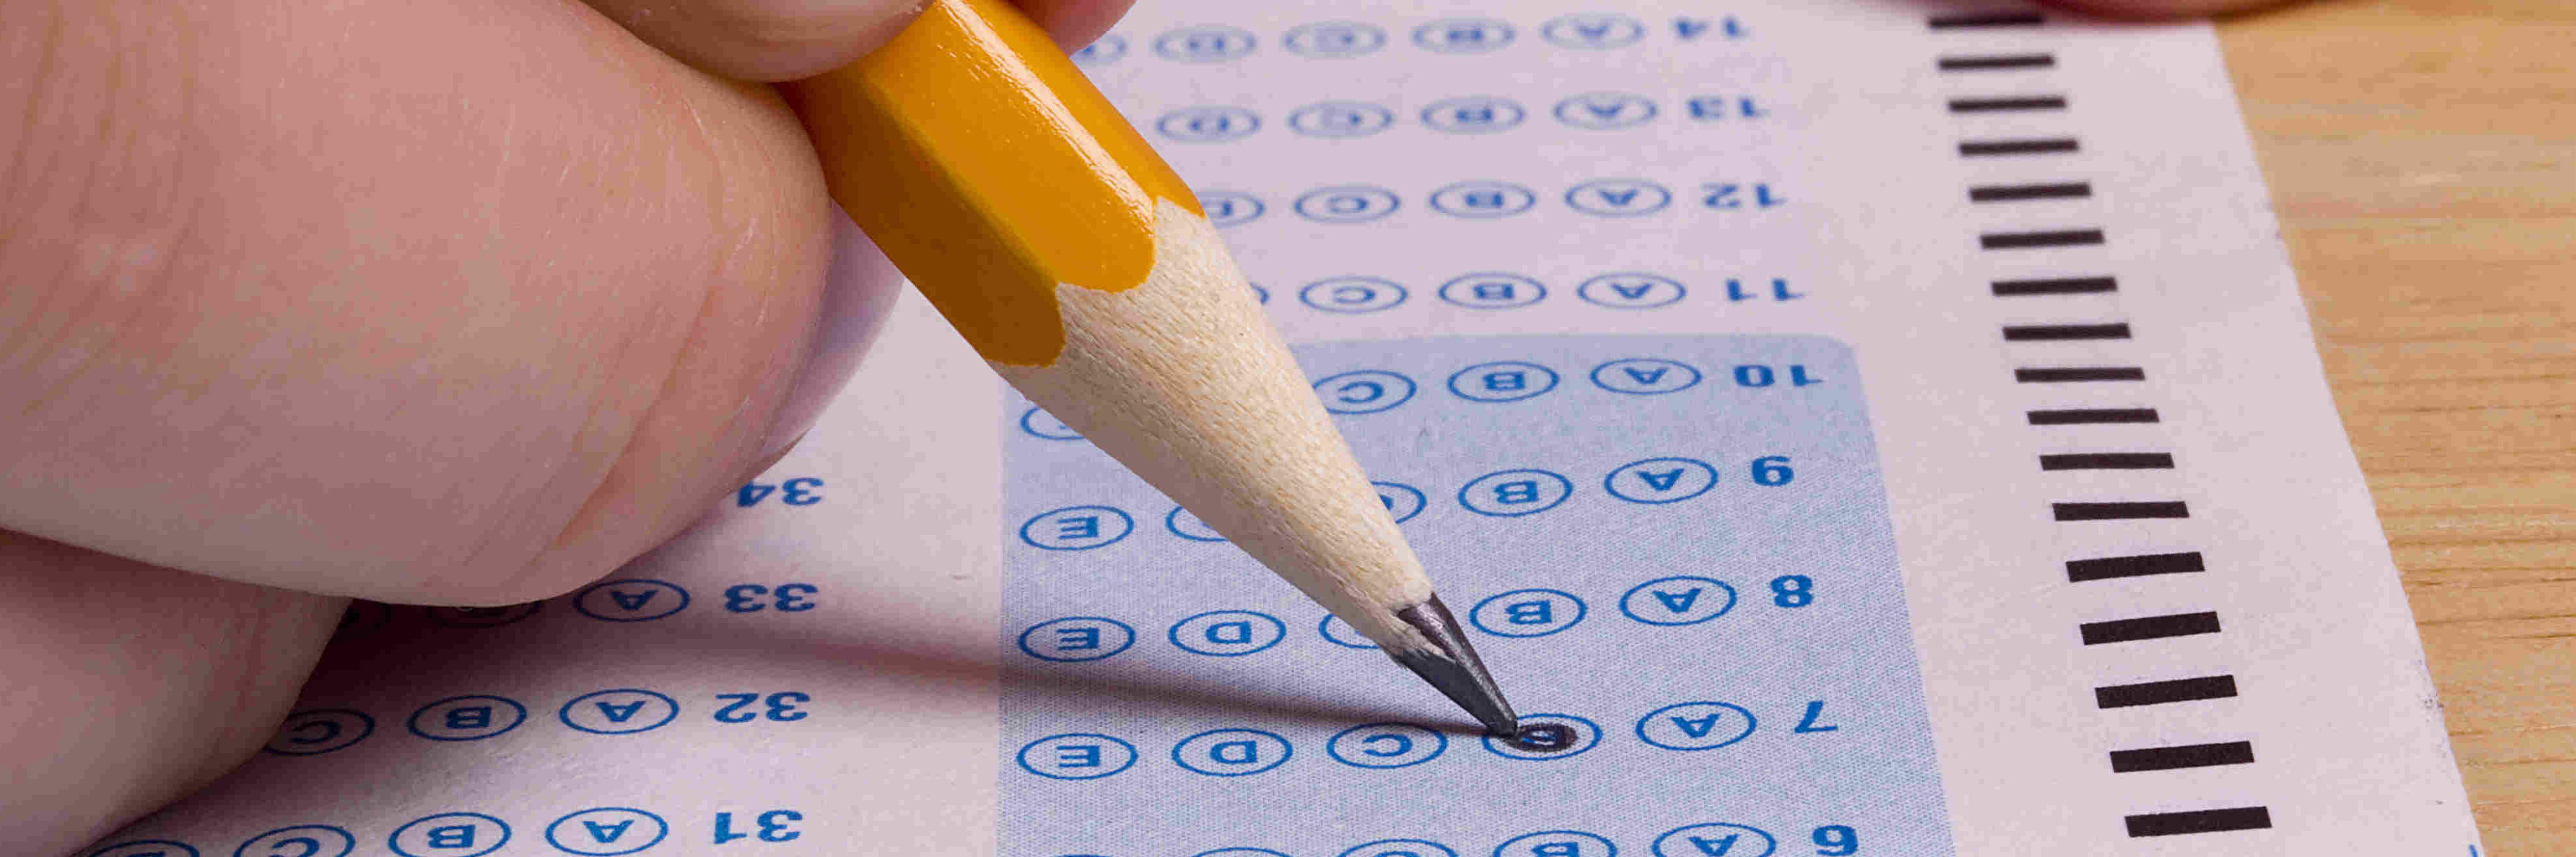 hand completing a multiple choice exam